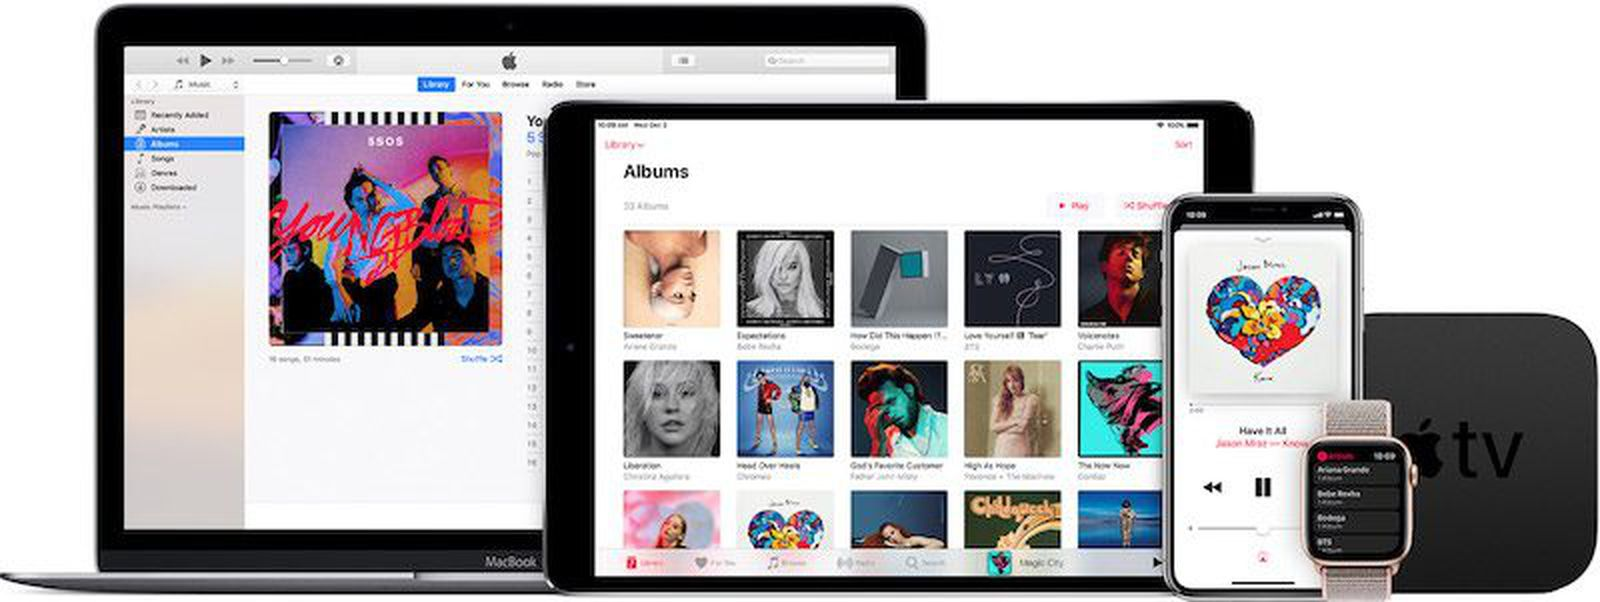 How to Cancel an Apple Music Subscription - MacRumors